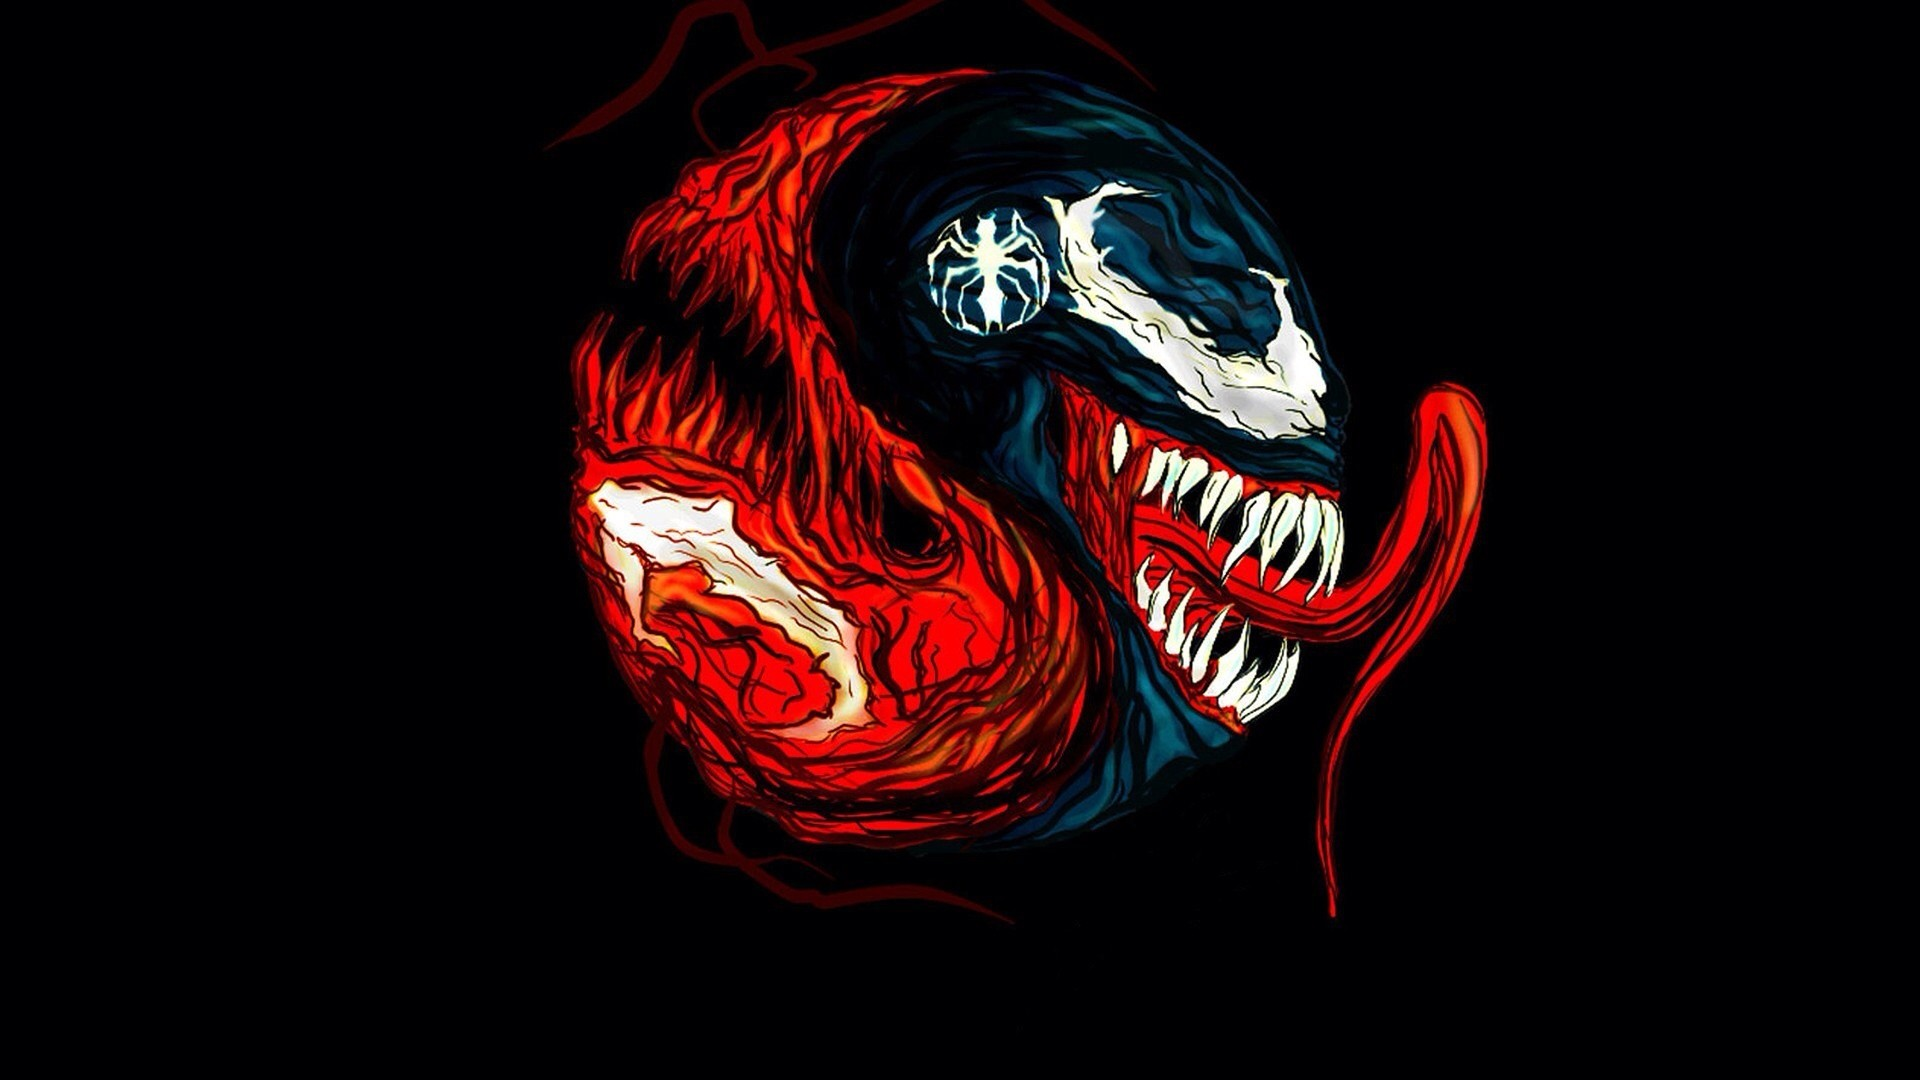 Venom Band Hd Wallpaper